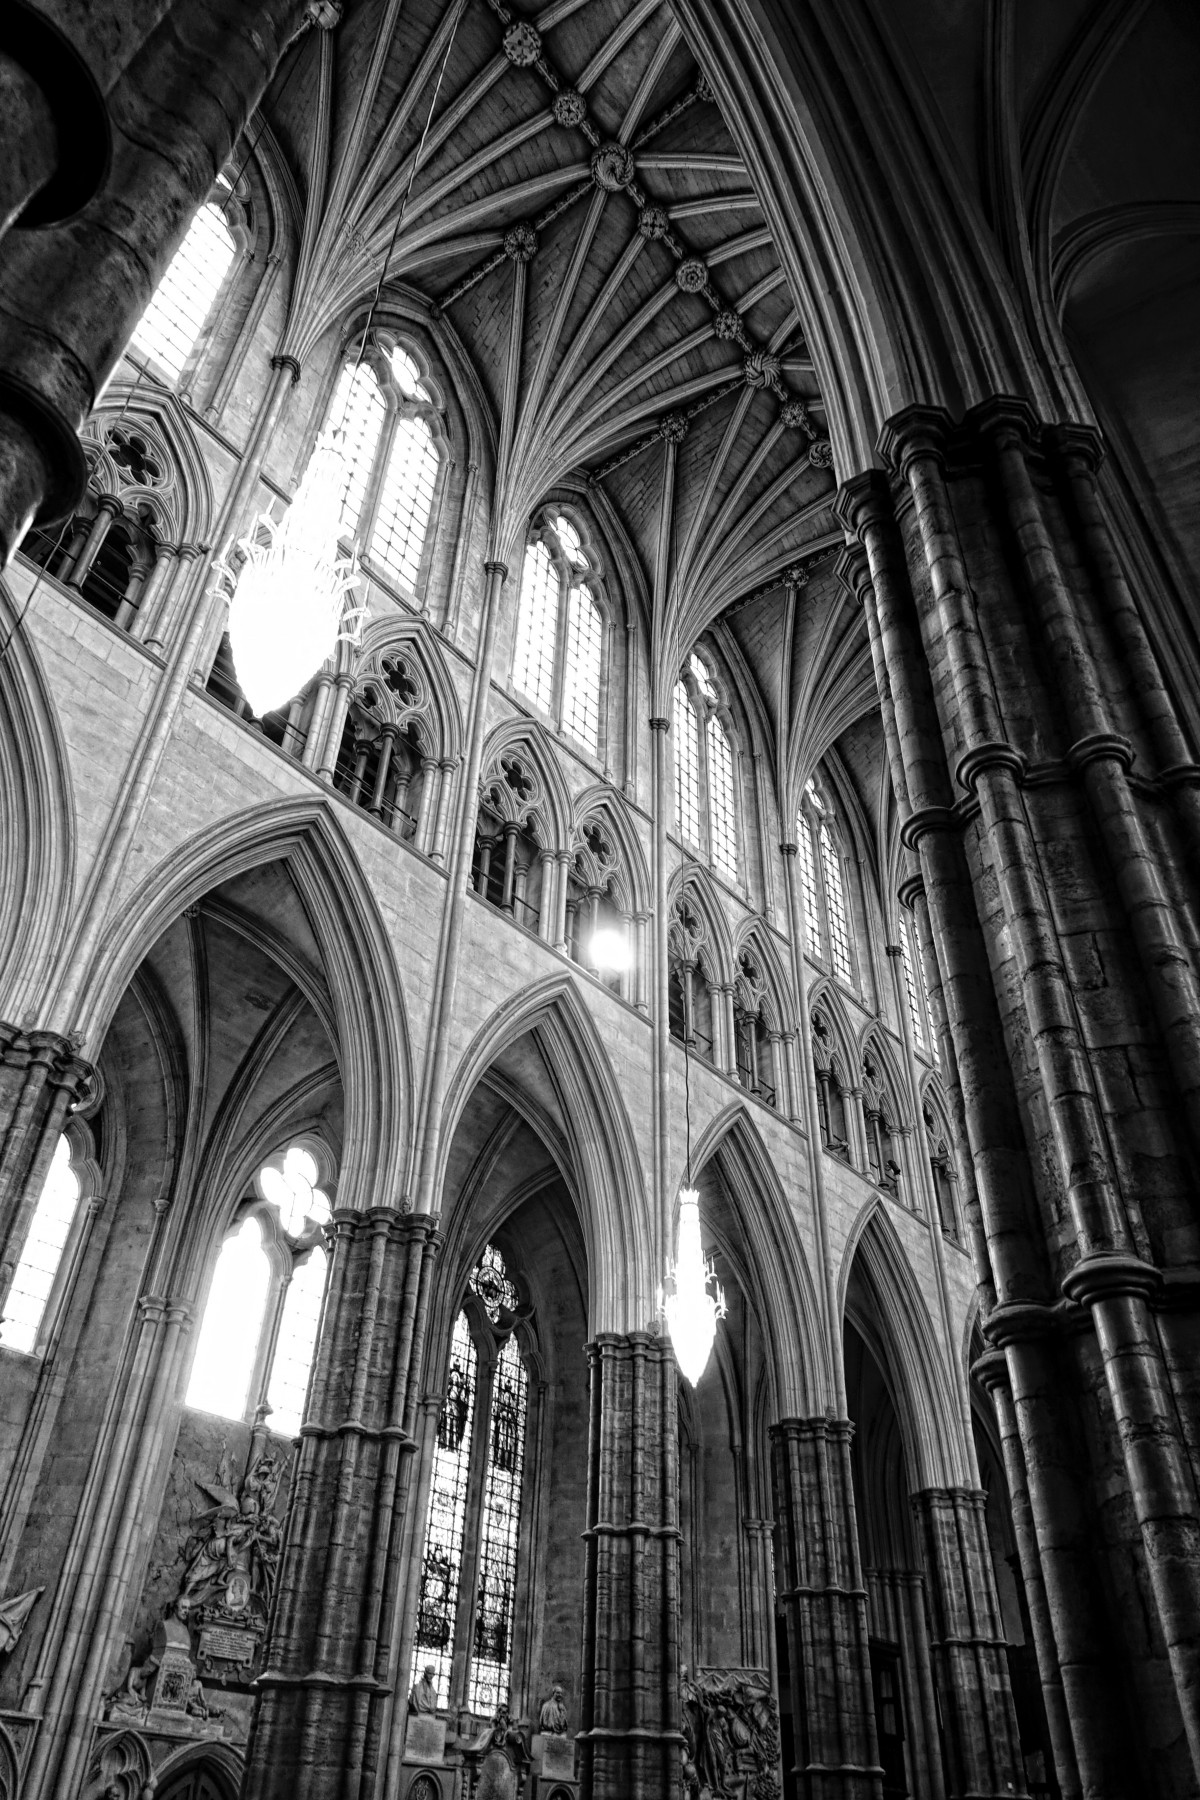 cathedral architecture gothic arches diagram usb host cable wiring free images black and white perspective building